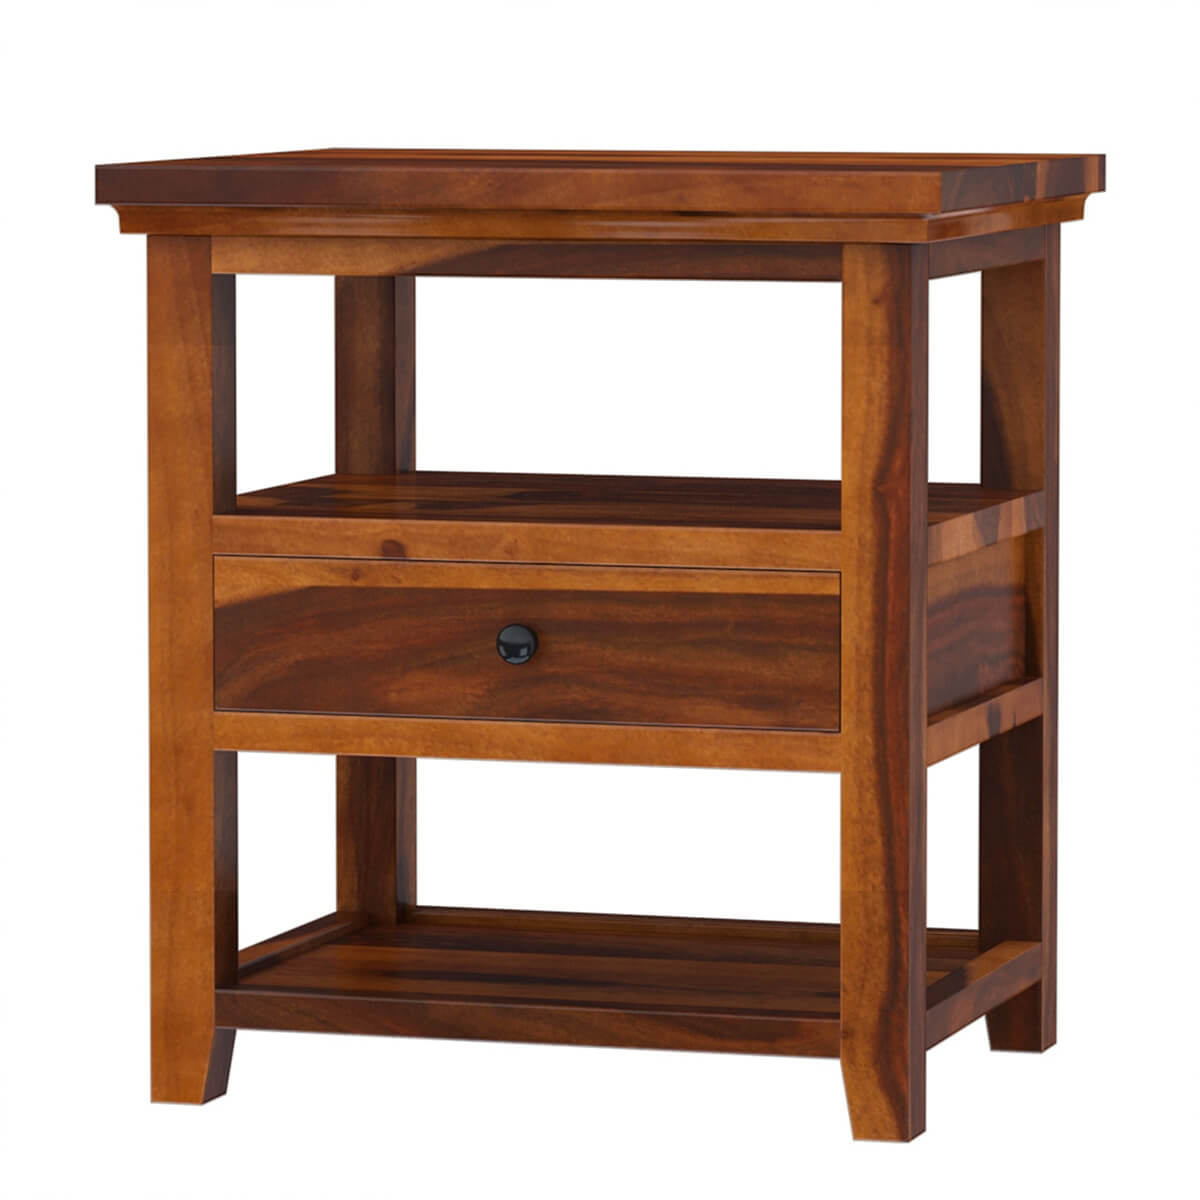 Home furniture by room living room end tables mission modern solid